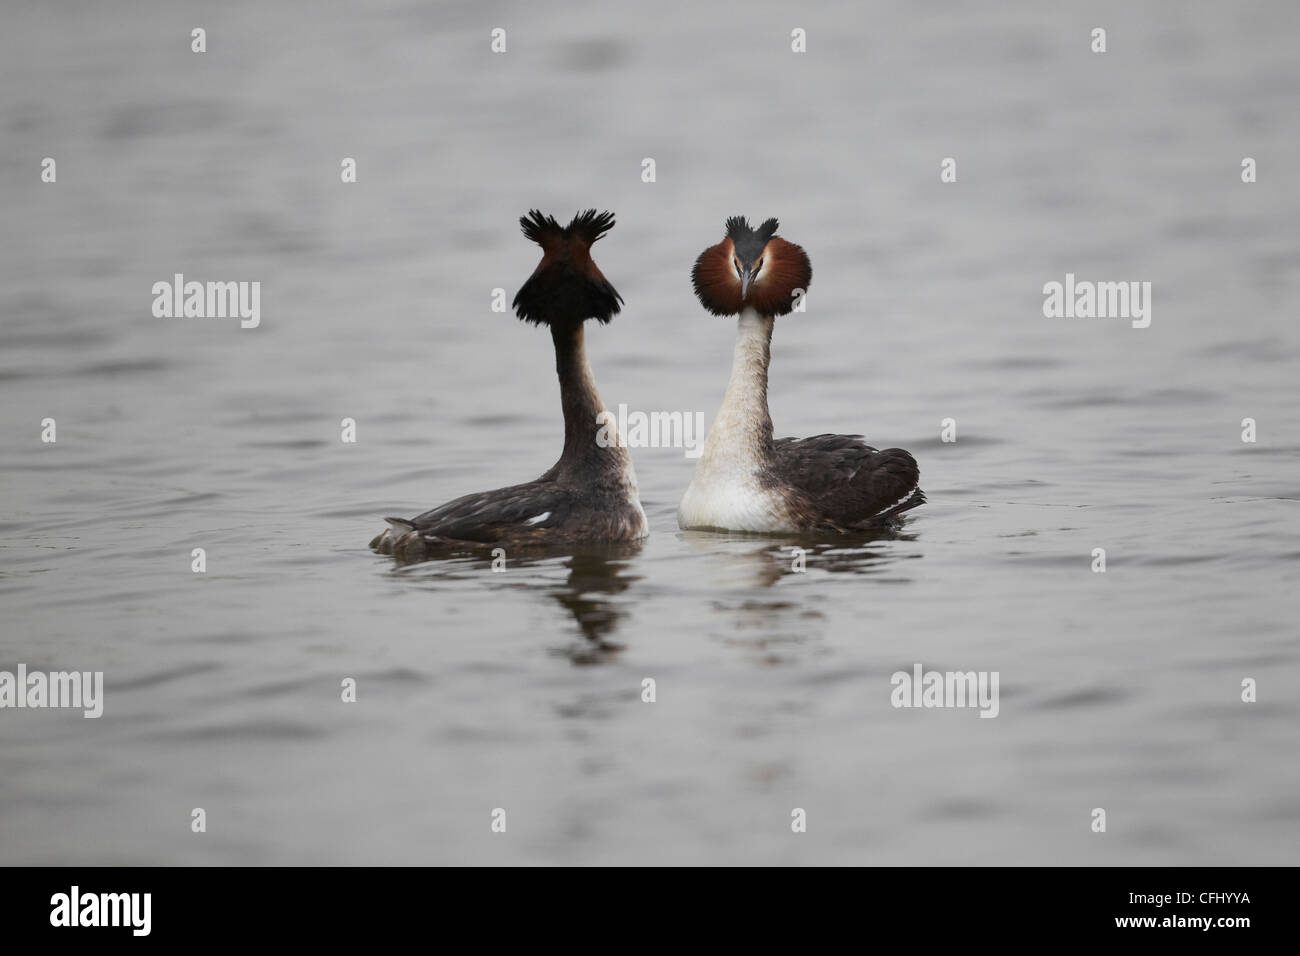 Great Crested Grebe's, Podiceps cristatus performing their head-to-head courtship display, East Yorkshire, UK - Stock Image